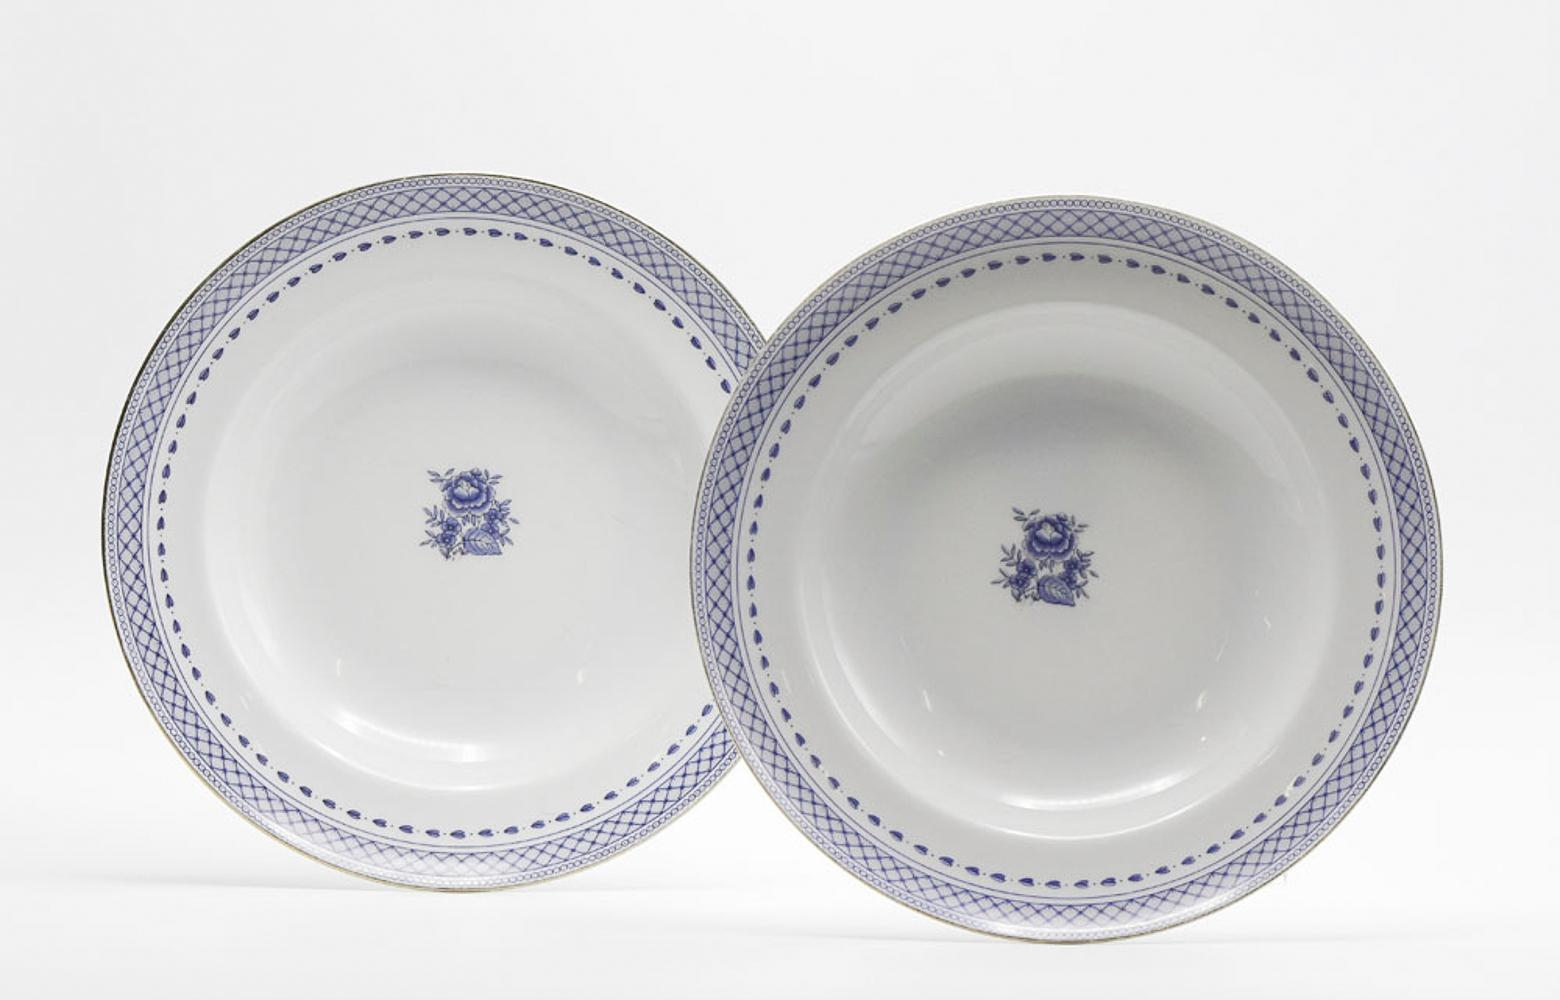 Pair of Vista Alegre porcelain soup plates